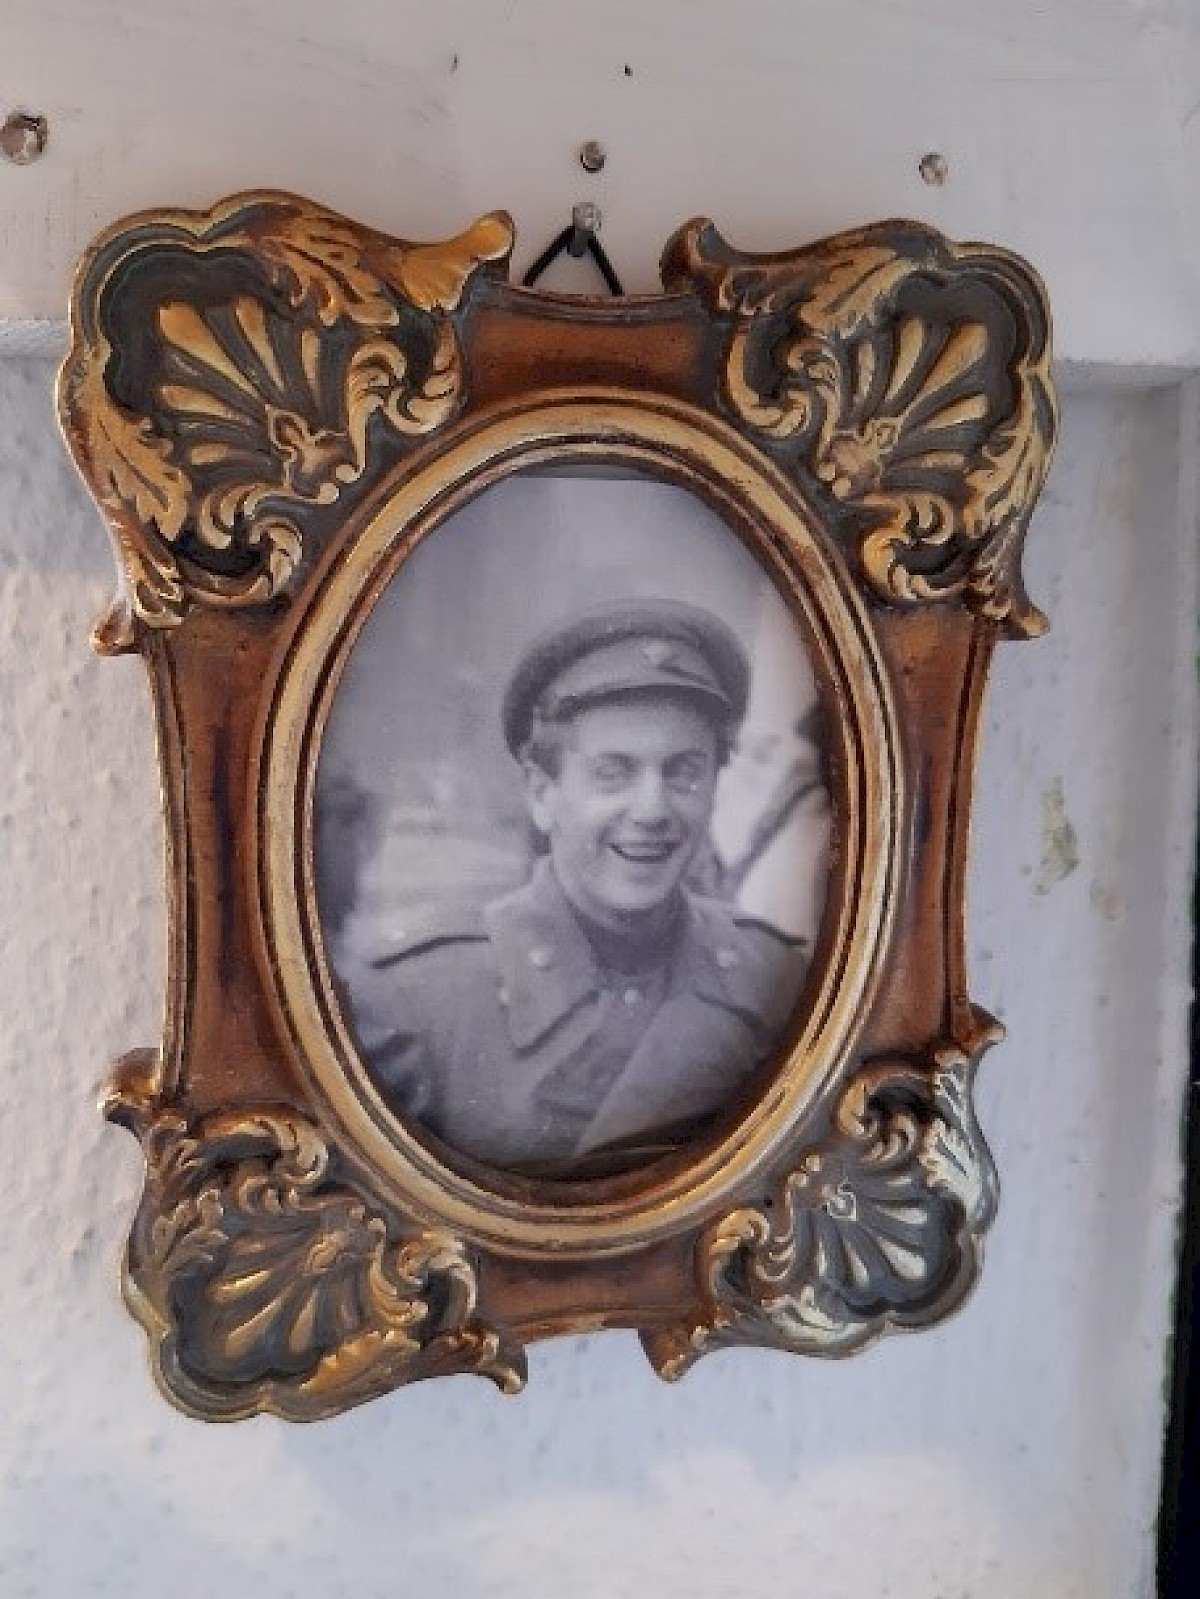 Framed picture of a soldier in uniform.